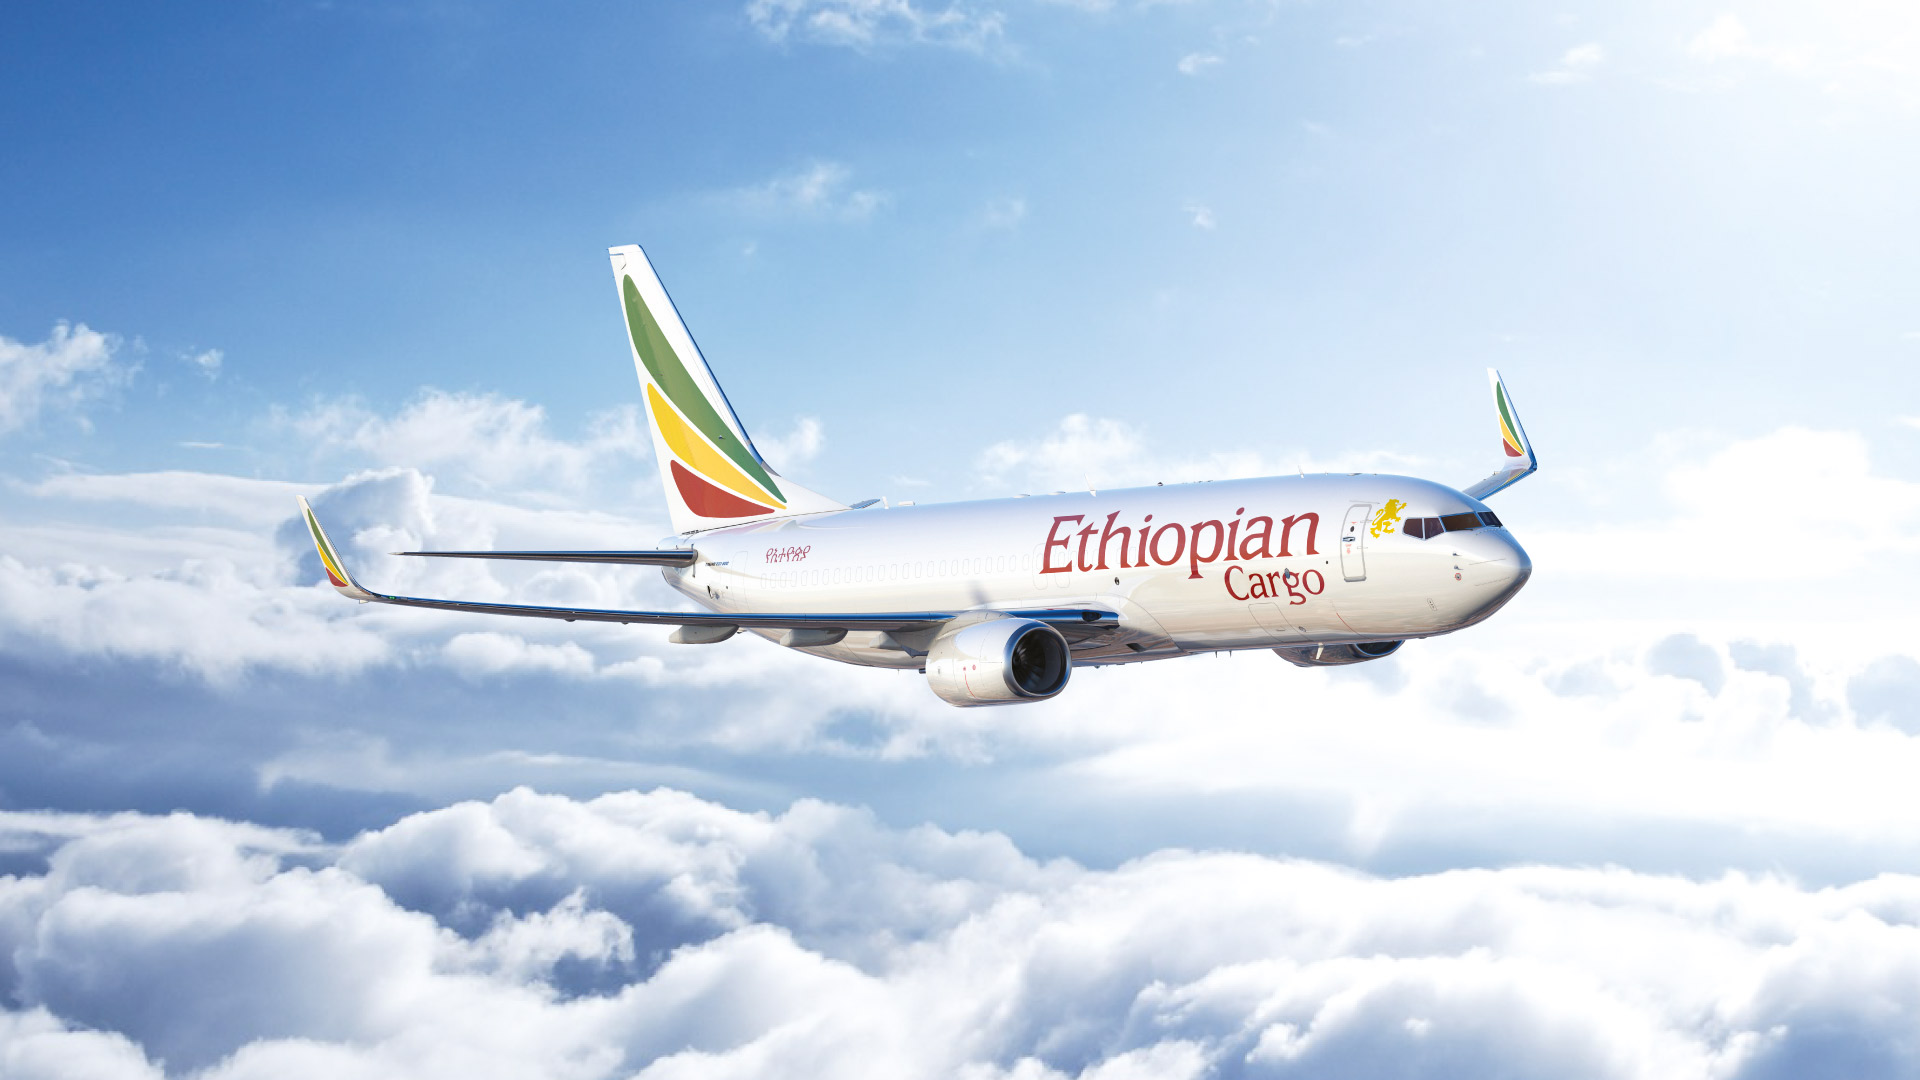 Ethiopian Cargo re-calibrates its operations in the wake of COVID-19